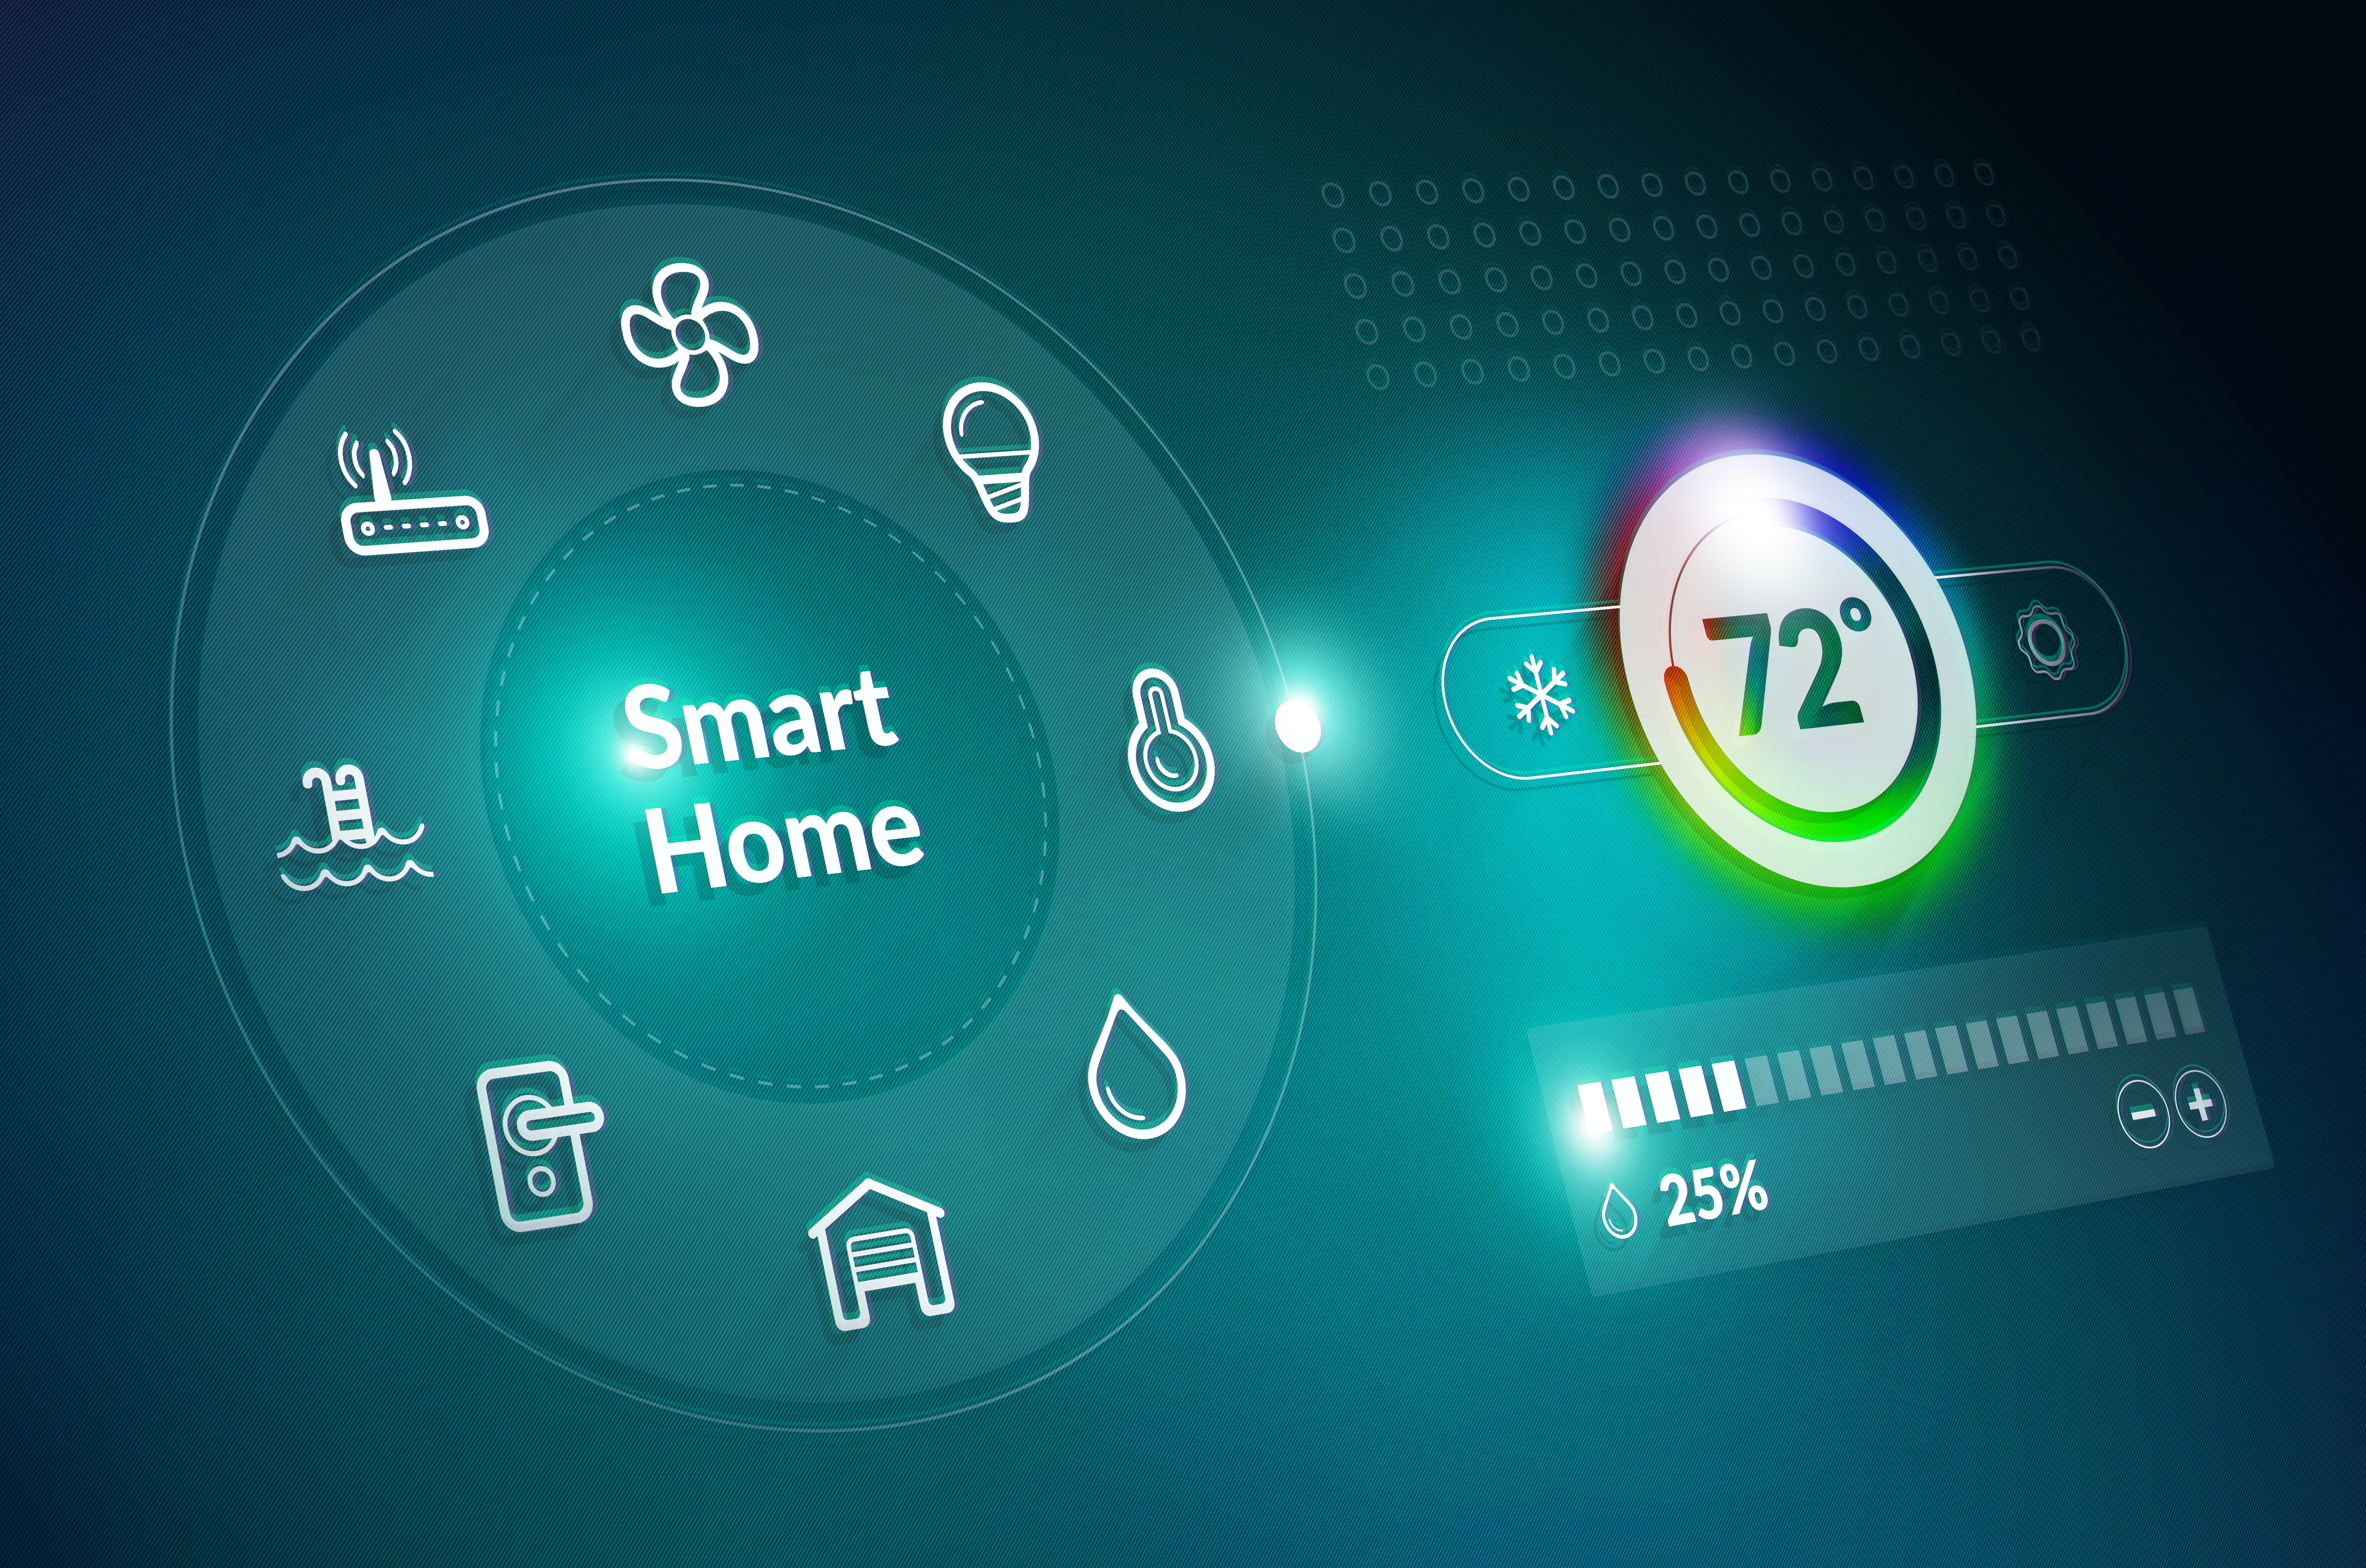 Going mainstream in the home: 4 things the IoT needs to be